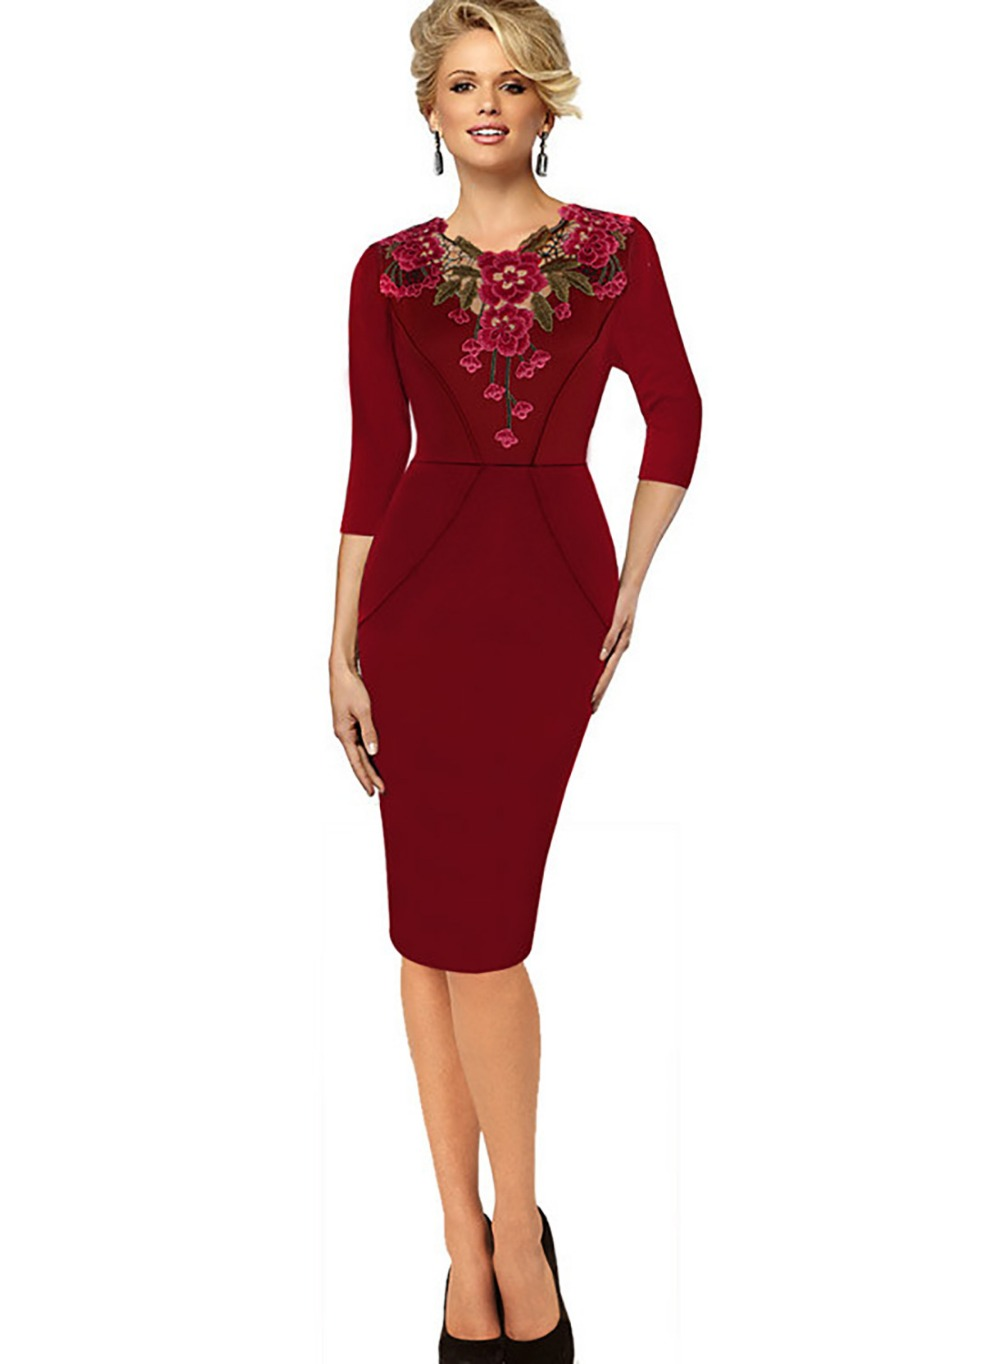 Yudian Trade Company 2017 New Design Women's casual embroidery pick up pencil dress career career work dress ladies Crochet knee length dresses